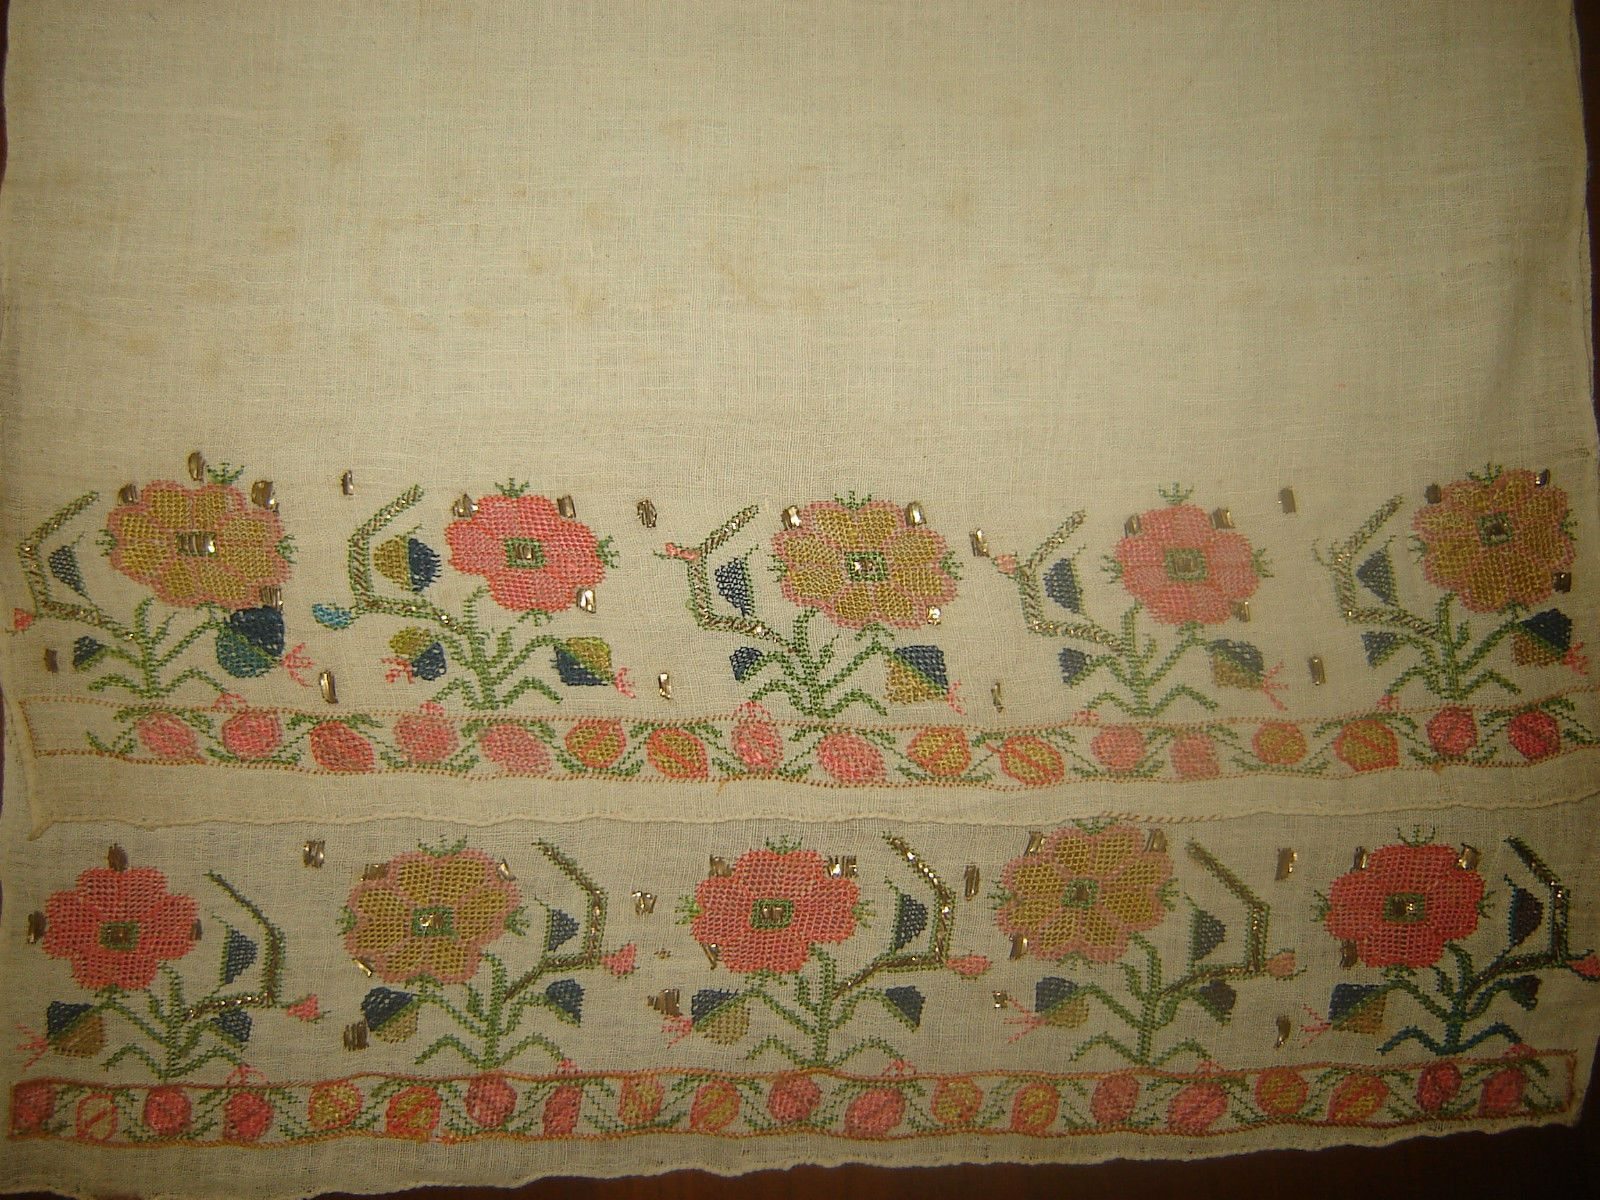 19th C  LARGE ANTIQUE OTTOMAN-TURKISH  HAND EMBROIDERY ON LINEN 'YAGLIK' 12